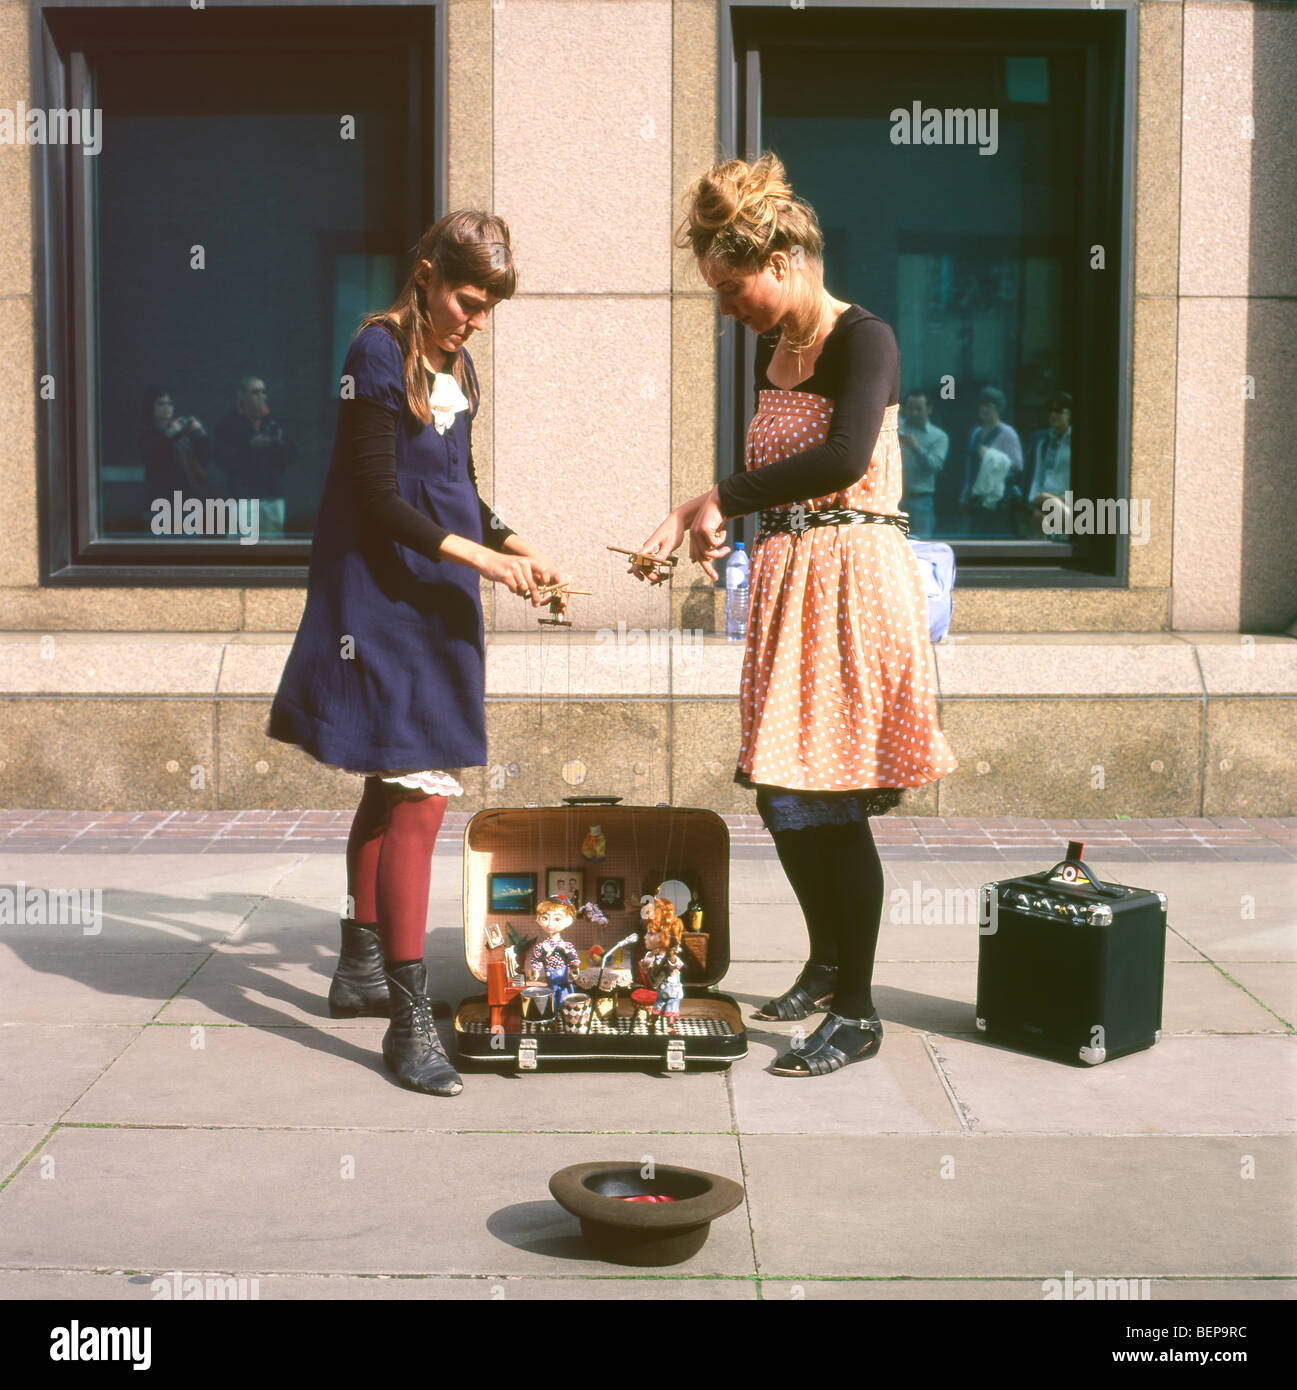 Female puppeteers with their rock band puppets busking on the streets of London England UK  kathy dewitt - Stock Image